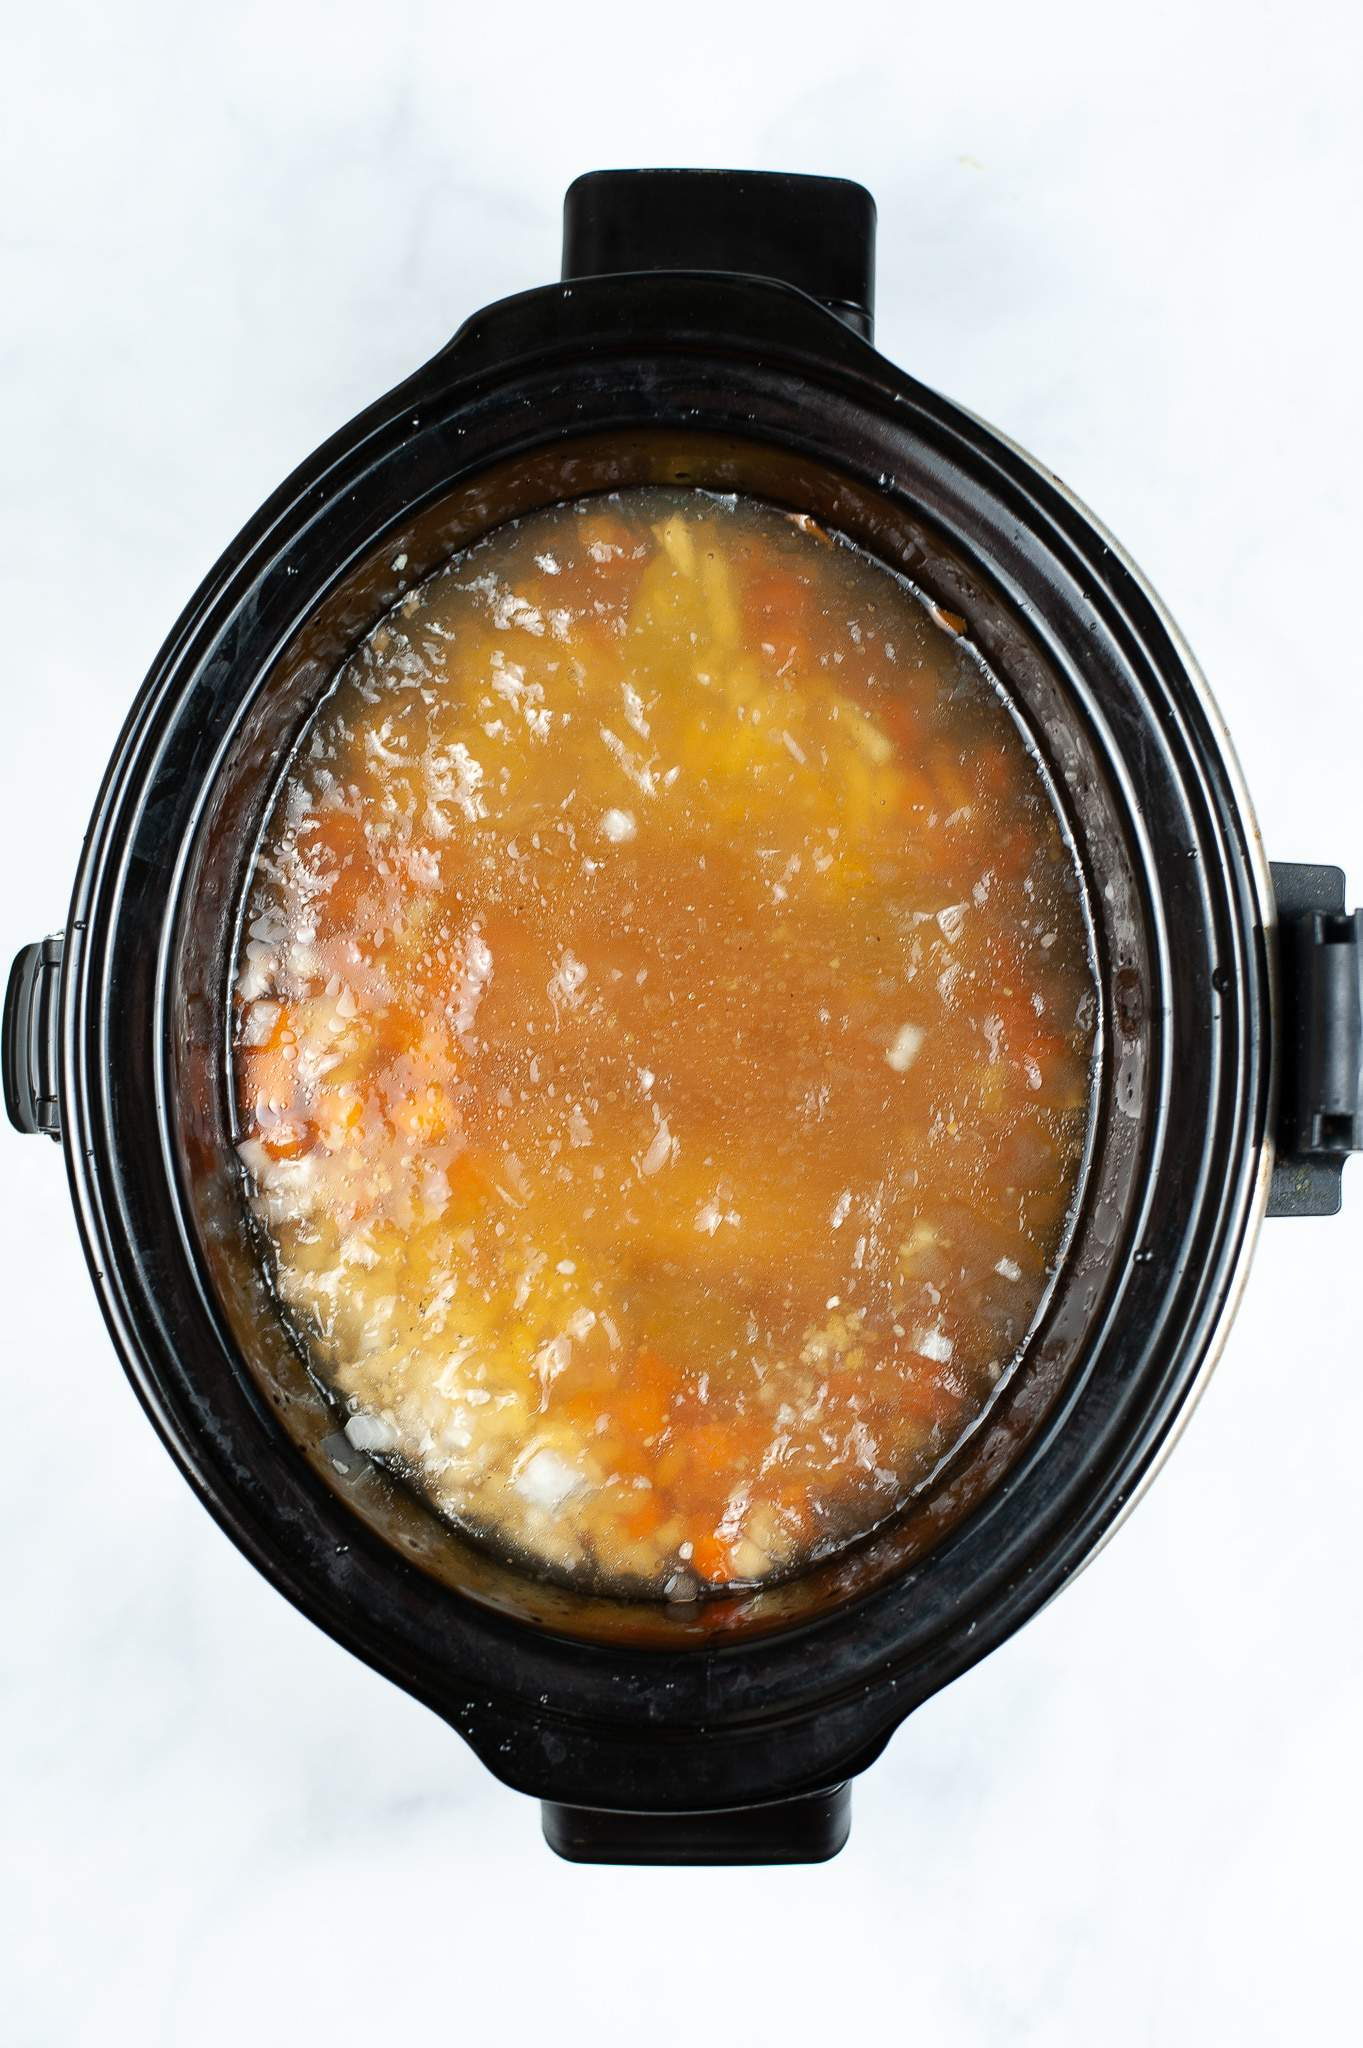 broth and veggies in slow cooker